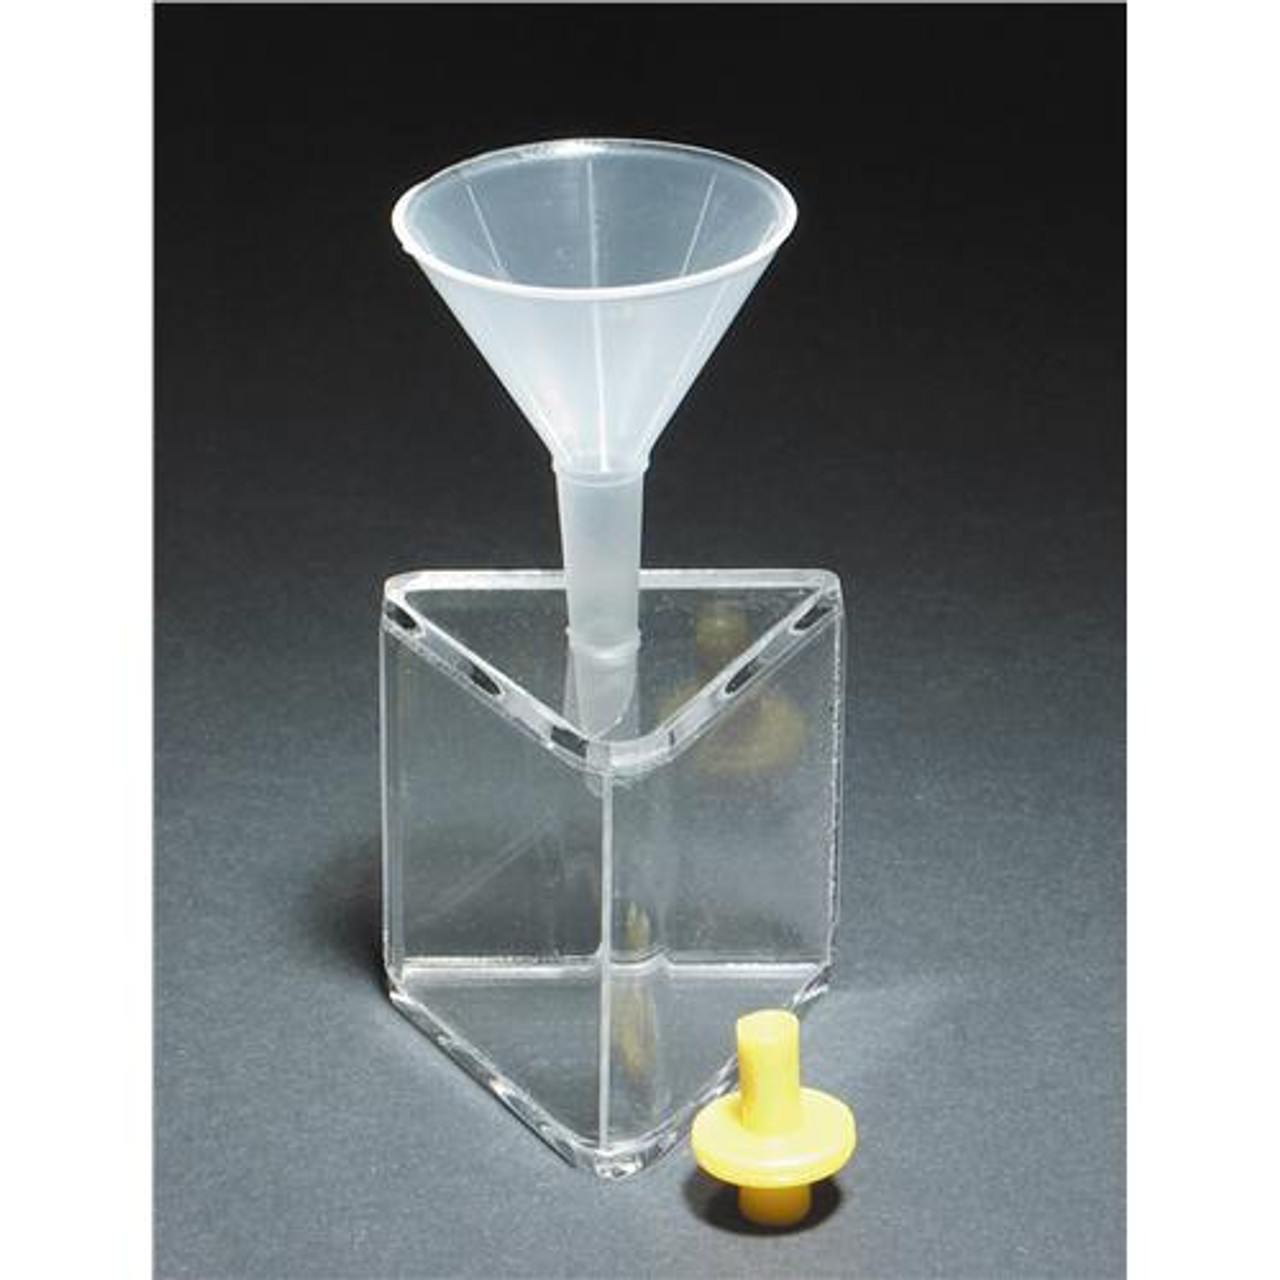 United Scientific Supplies PHA045 Hollow Acrylic Prism,w/ Funnel & Stopper  Hollow Acrylic Prism,w/ Funnel & Stopper (Each of 1)